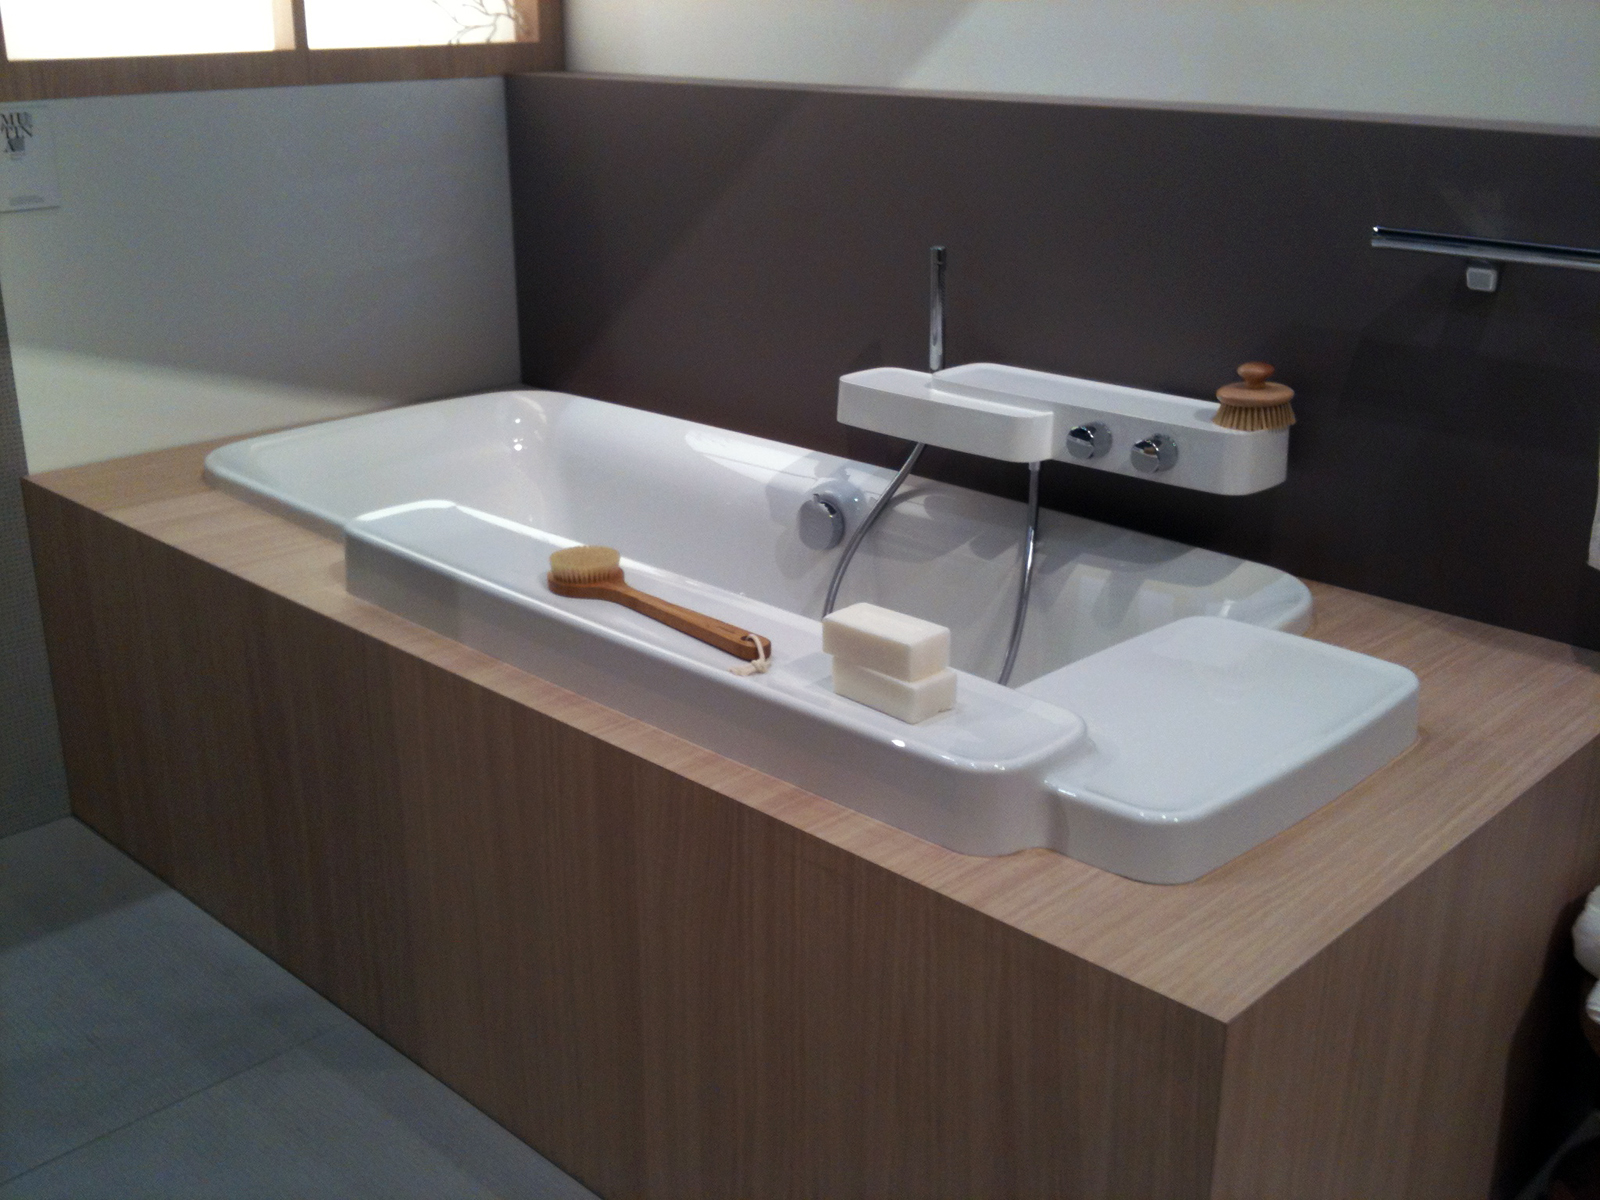 Axor sink at Dwell on Design 2012